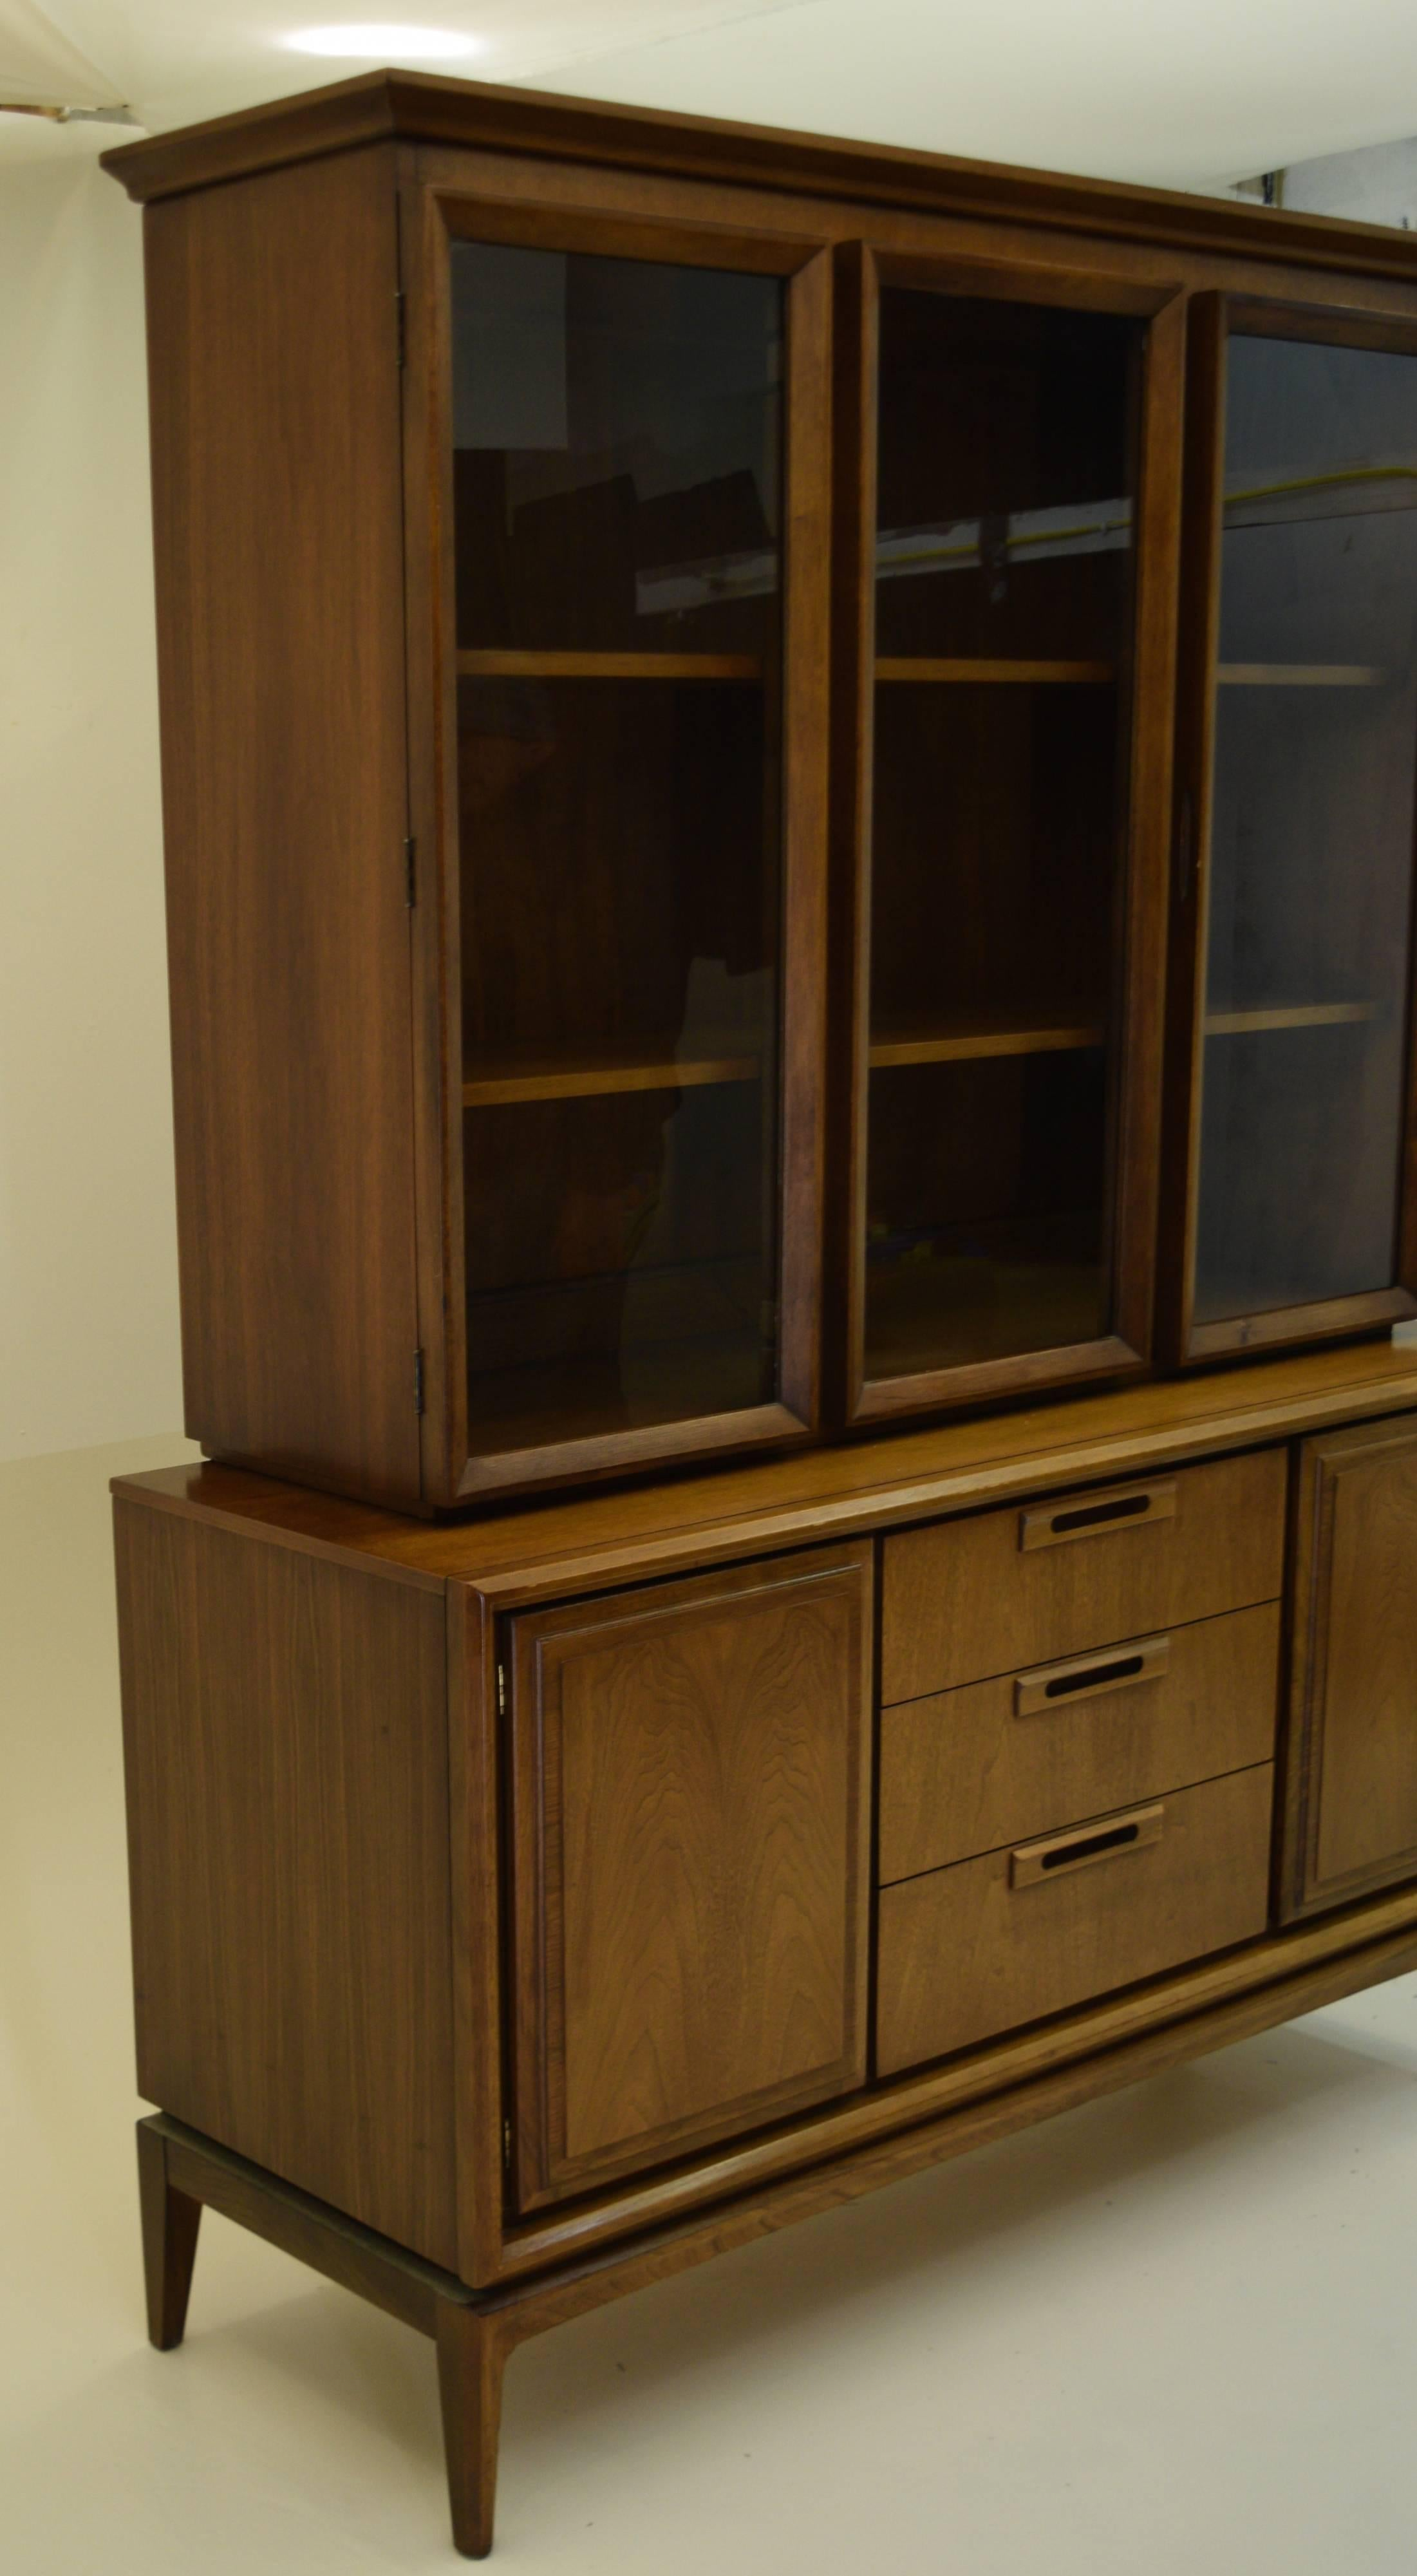 Merveilleux We Have A Dining Table, Credenza And This China Cabinet And Hutch From The  Same